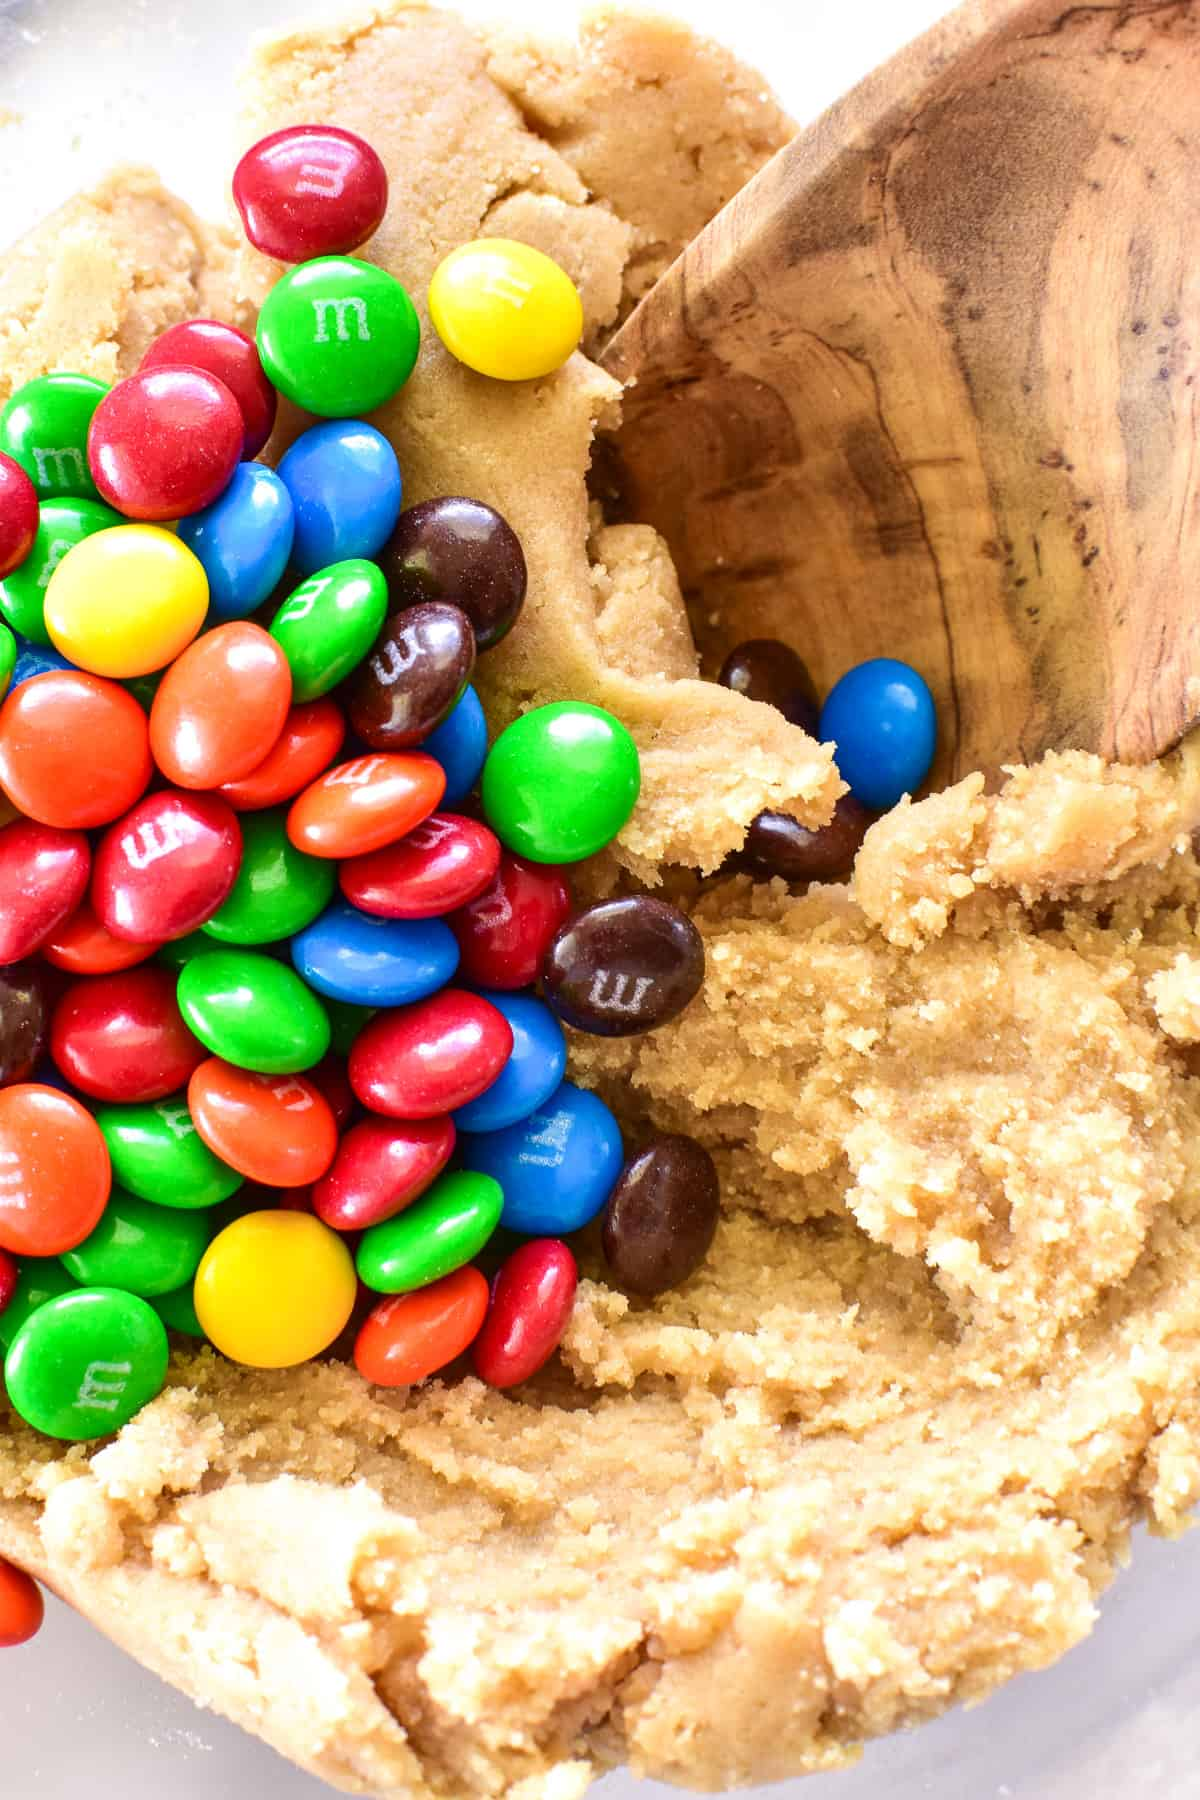 Cookie Dough with m&m's being stirred in